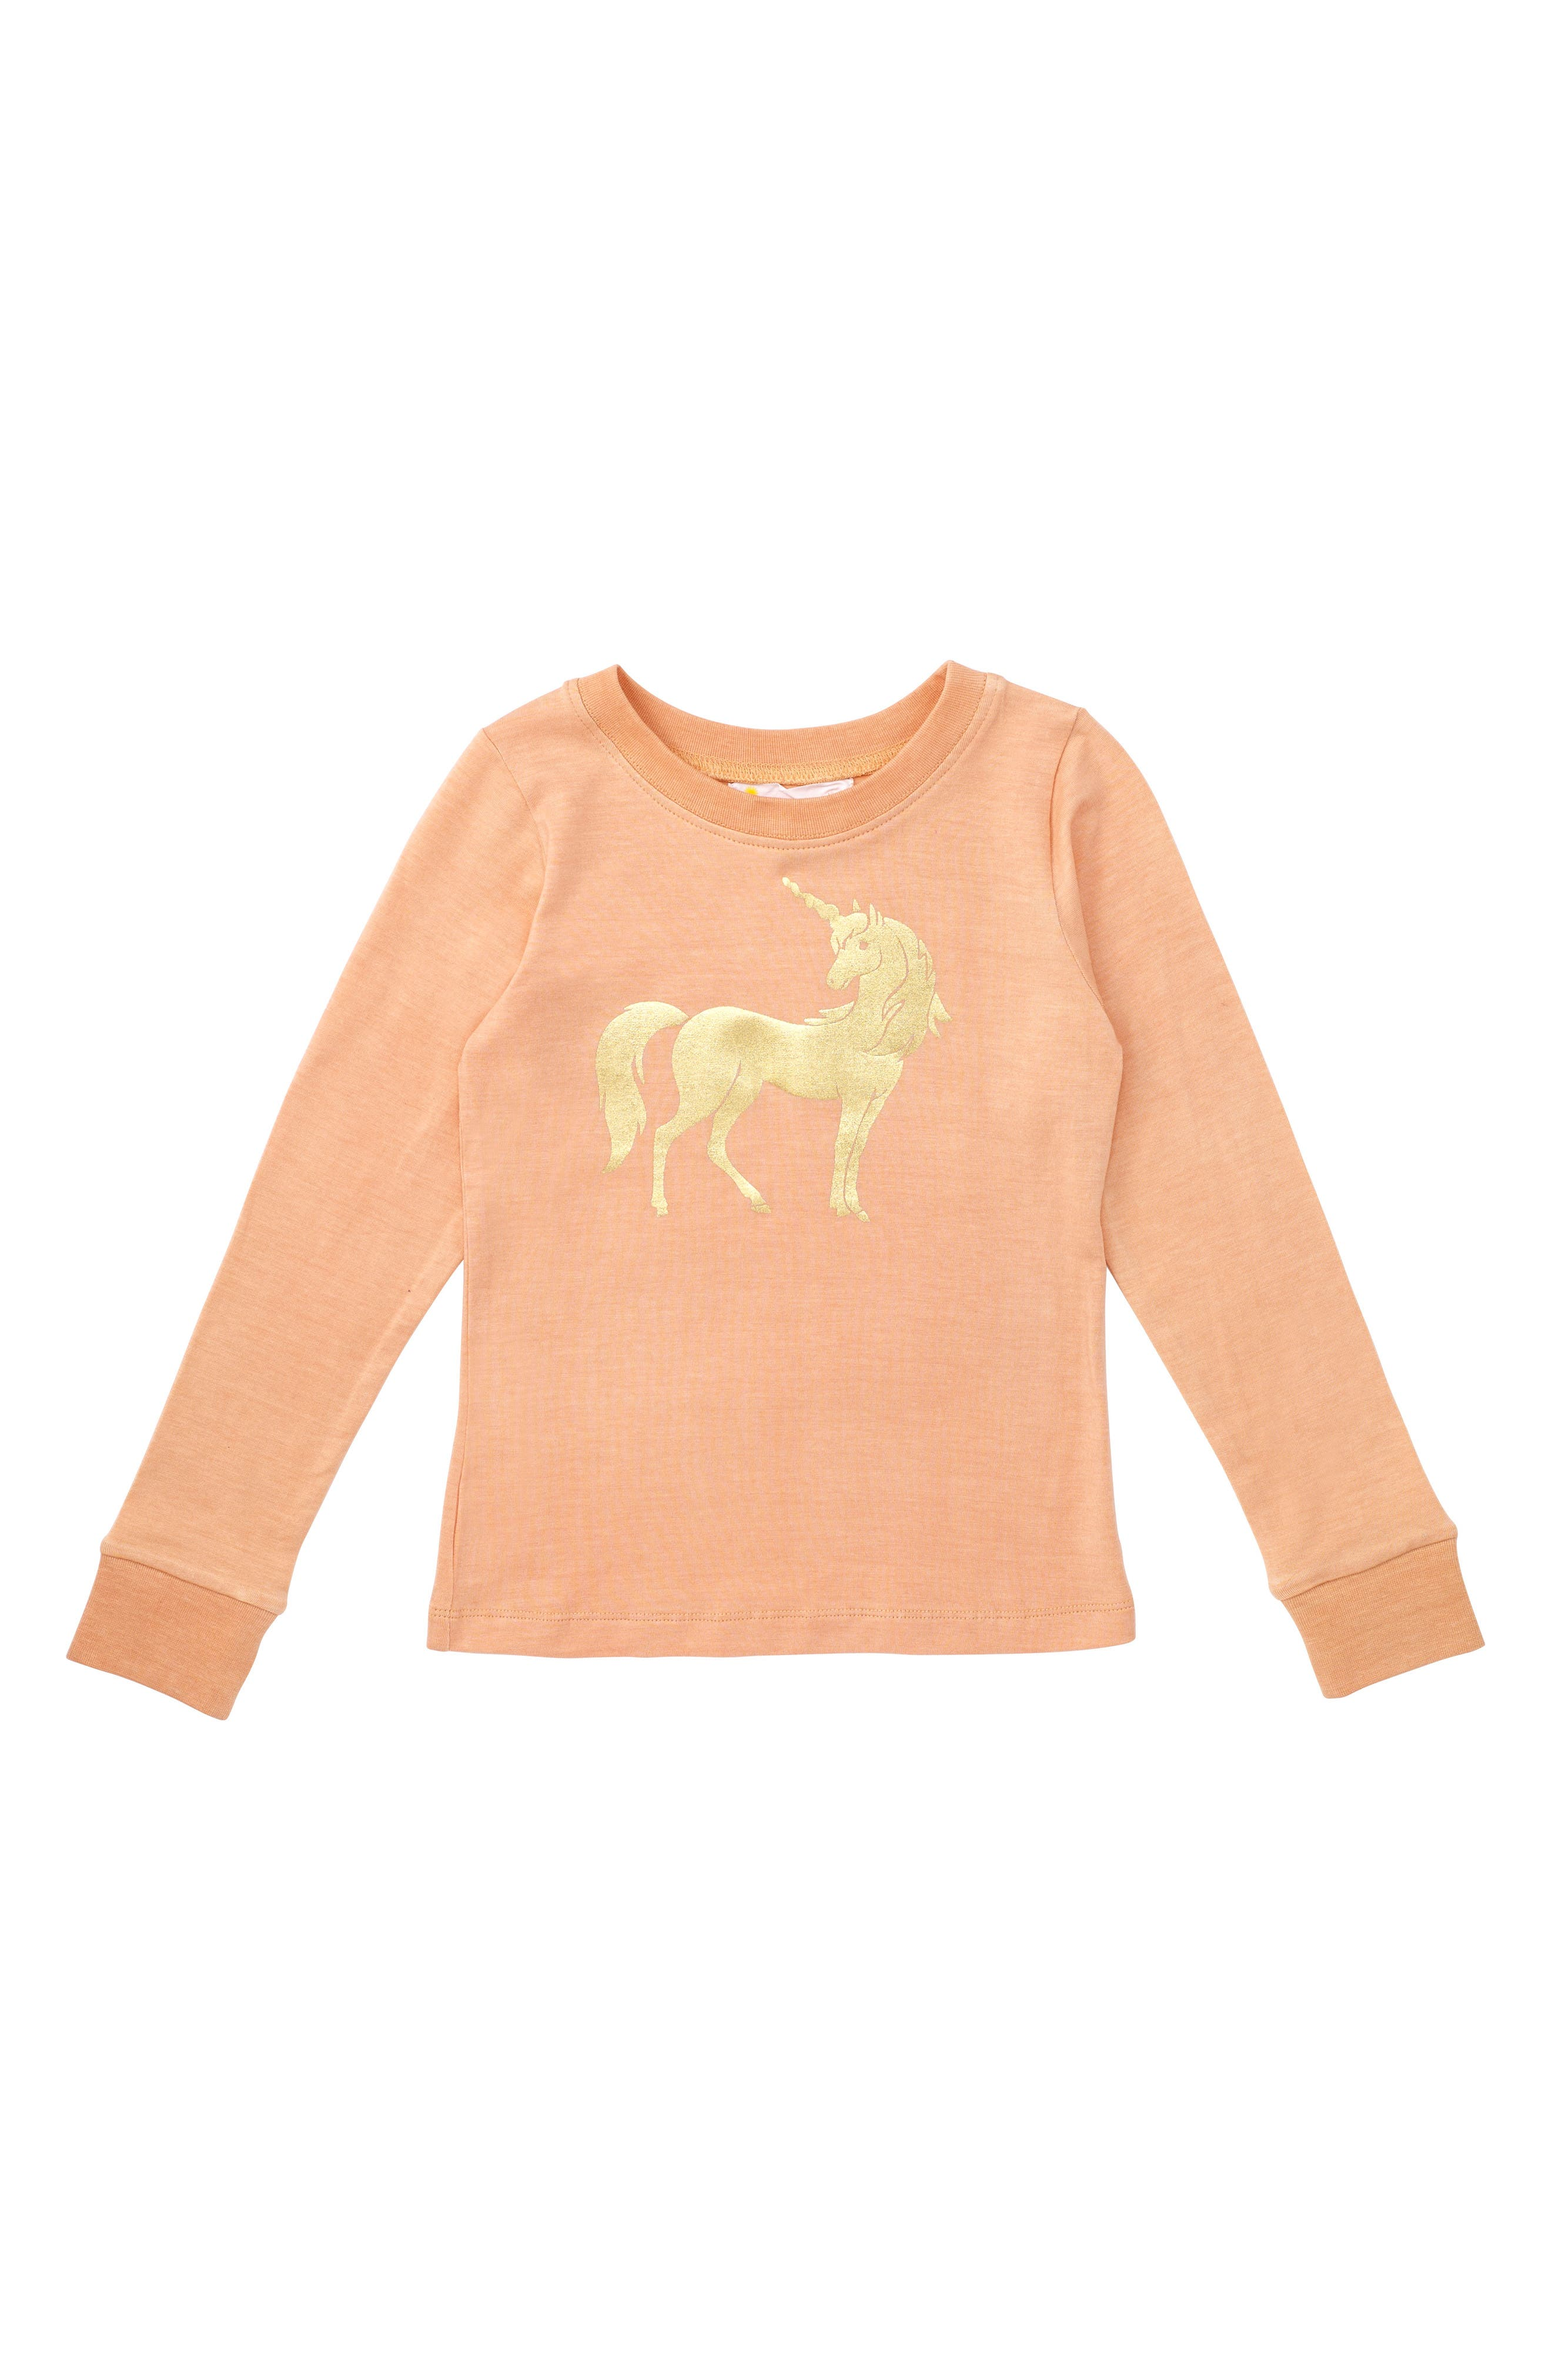 Masalababy Unicorn Graphic Tee (Toddler Girls, Little Girls & Big Girls)